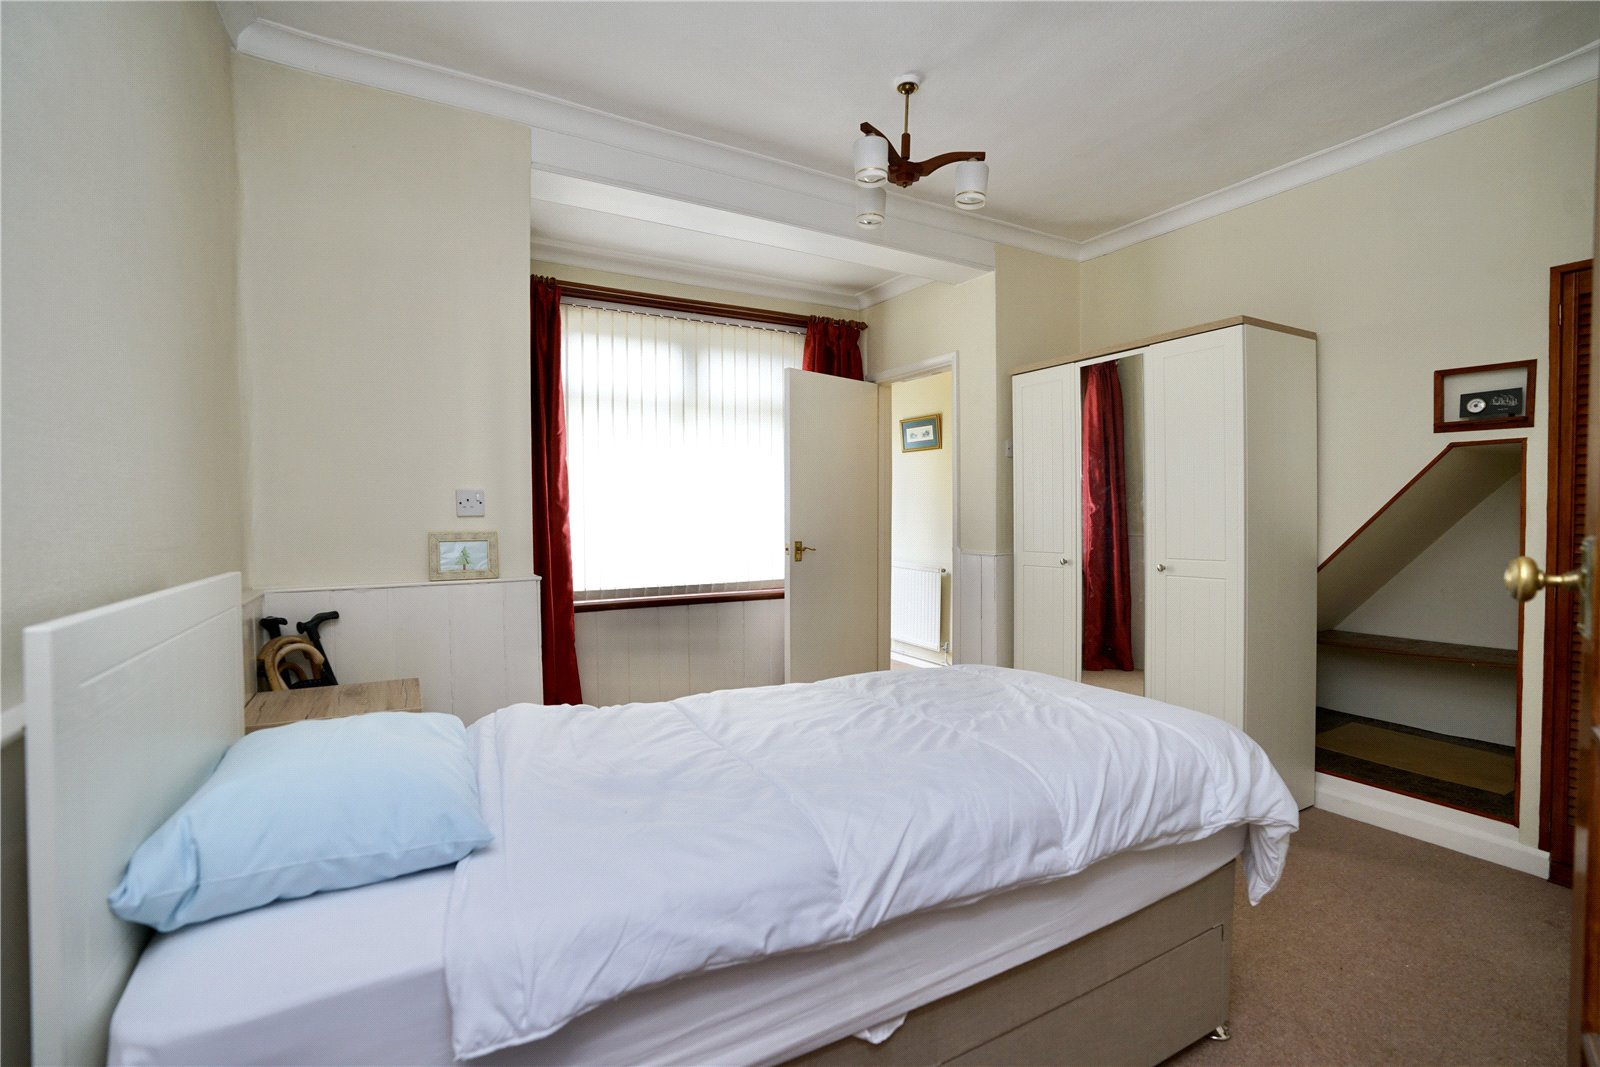 3 bed house for sale in Great North Road, Eaton Socon  - Property Image 8